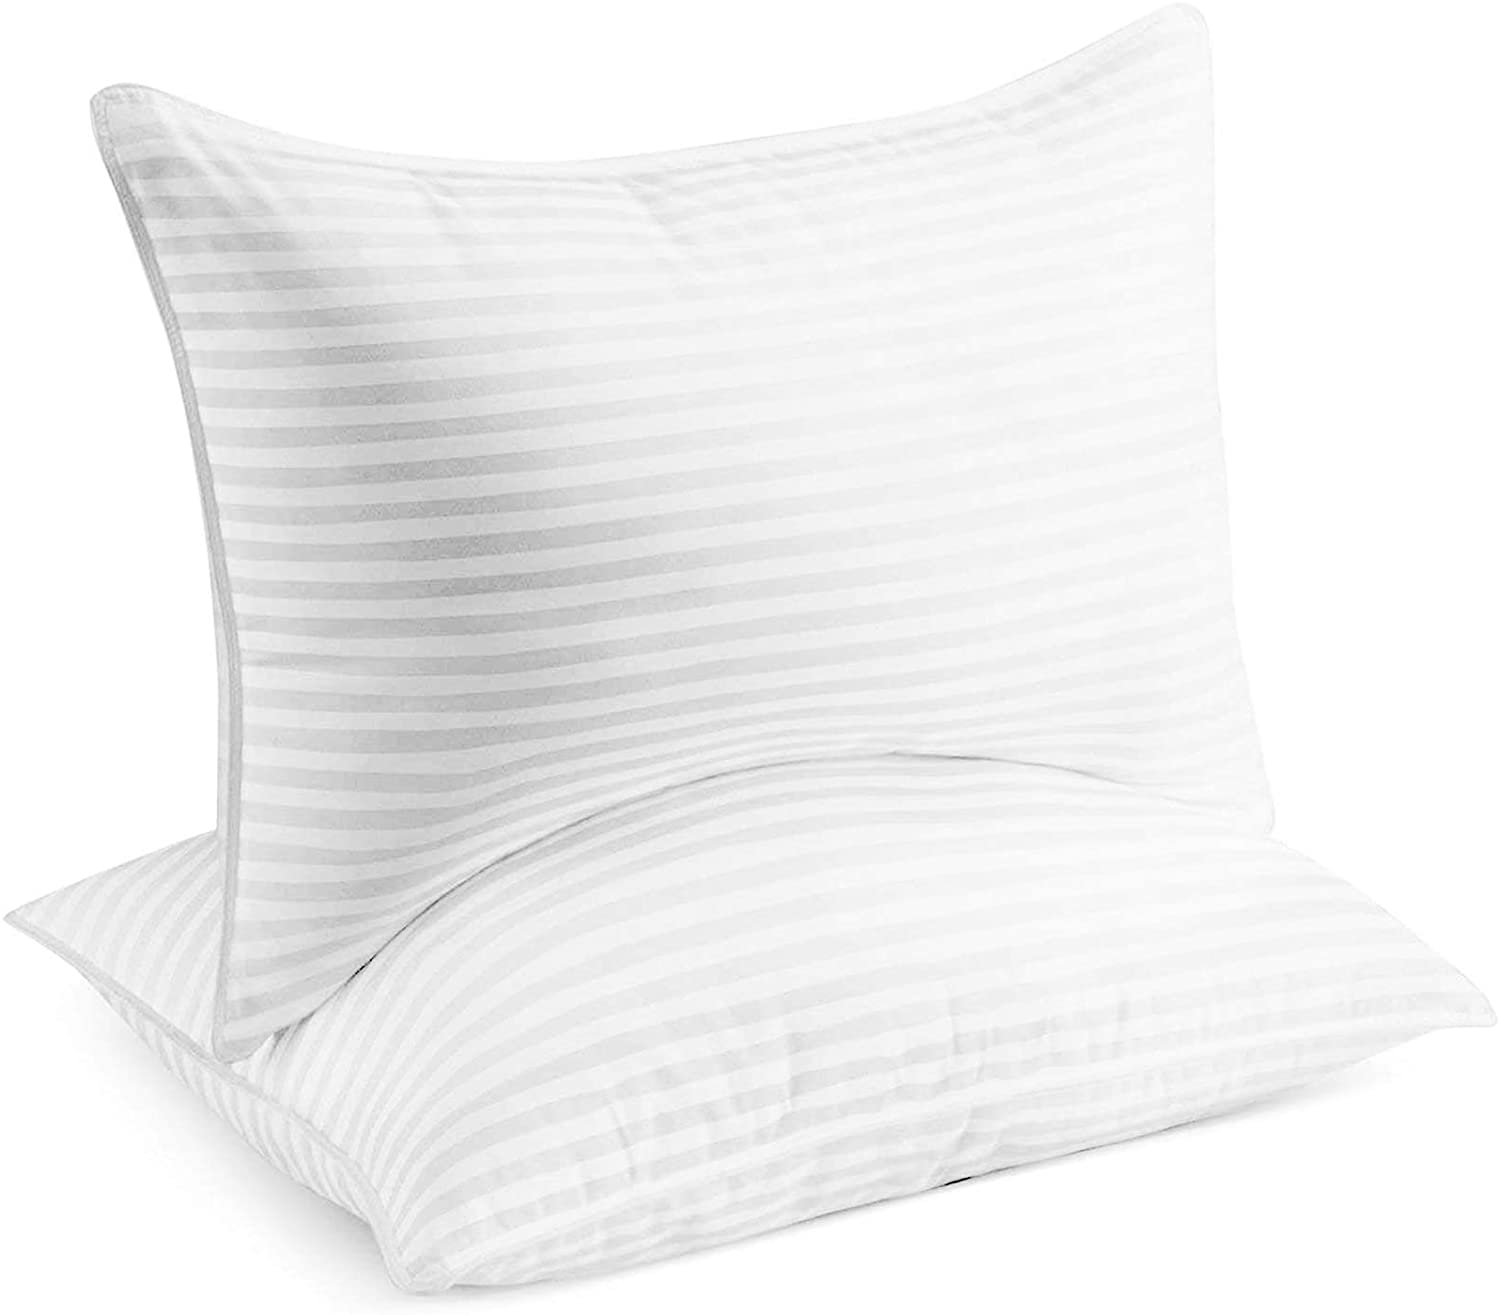 Beckham Hotel Luxery Pillows